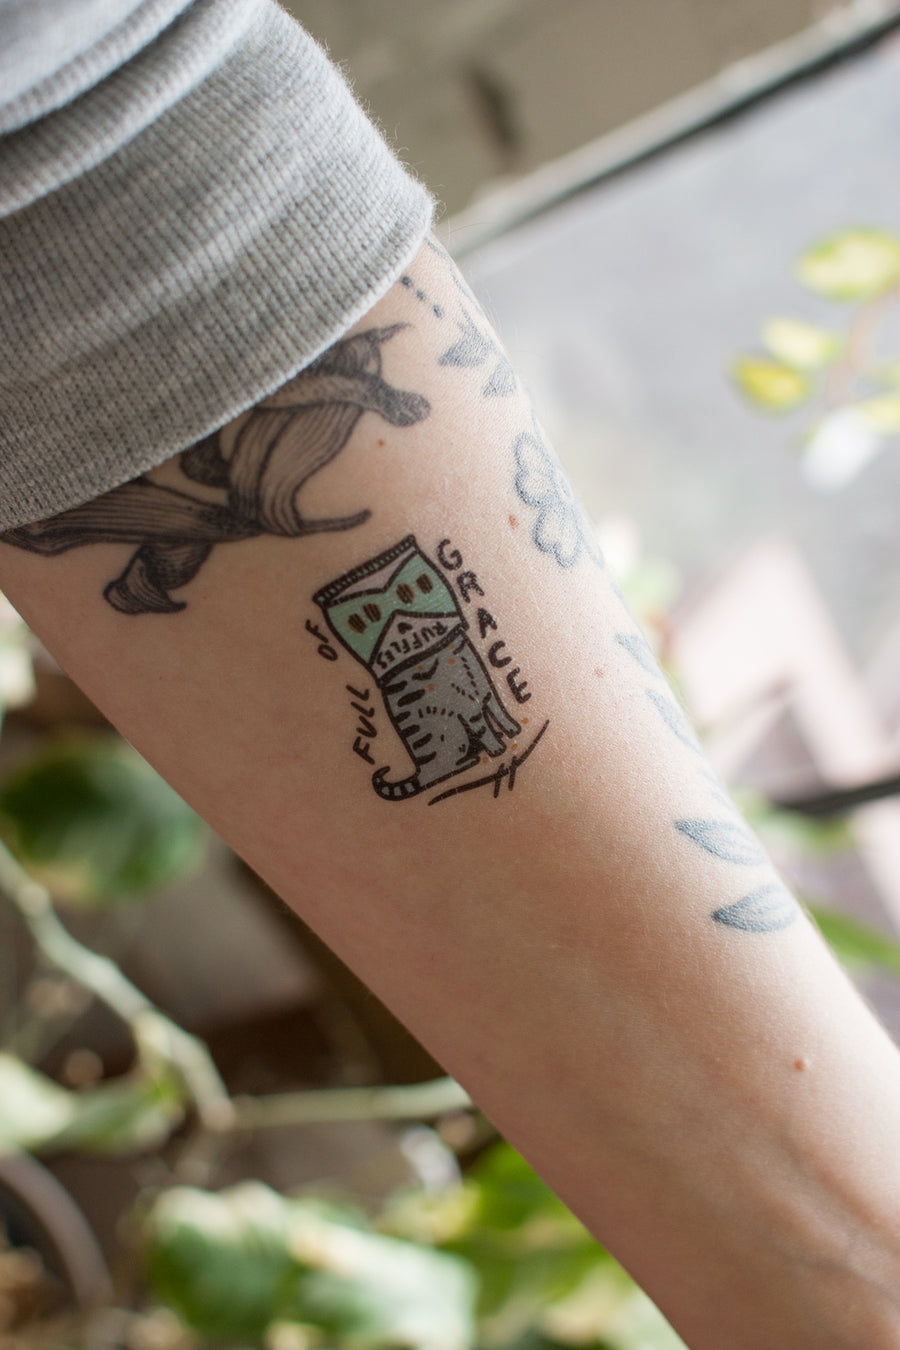 Greatest Hits Temporary Tattoos